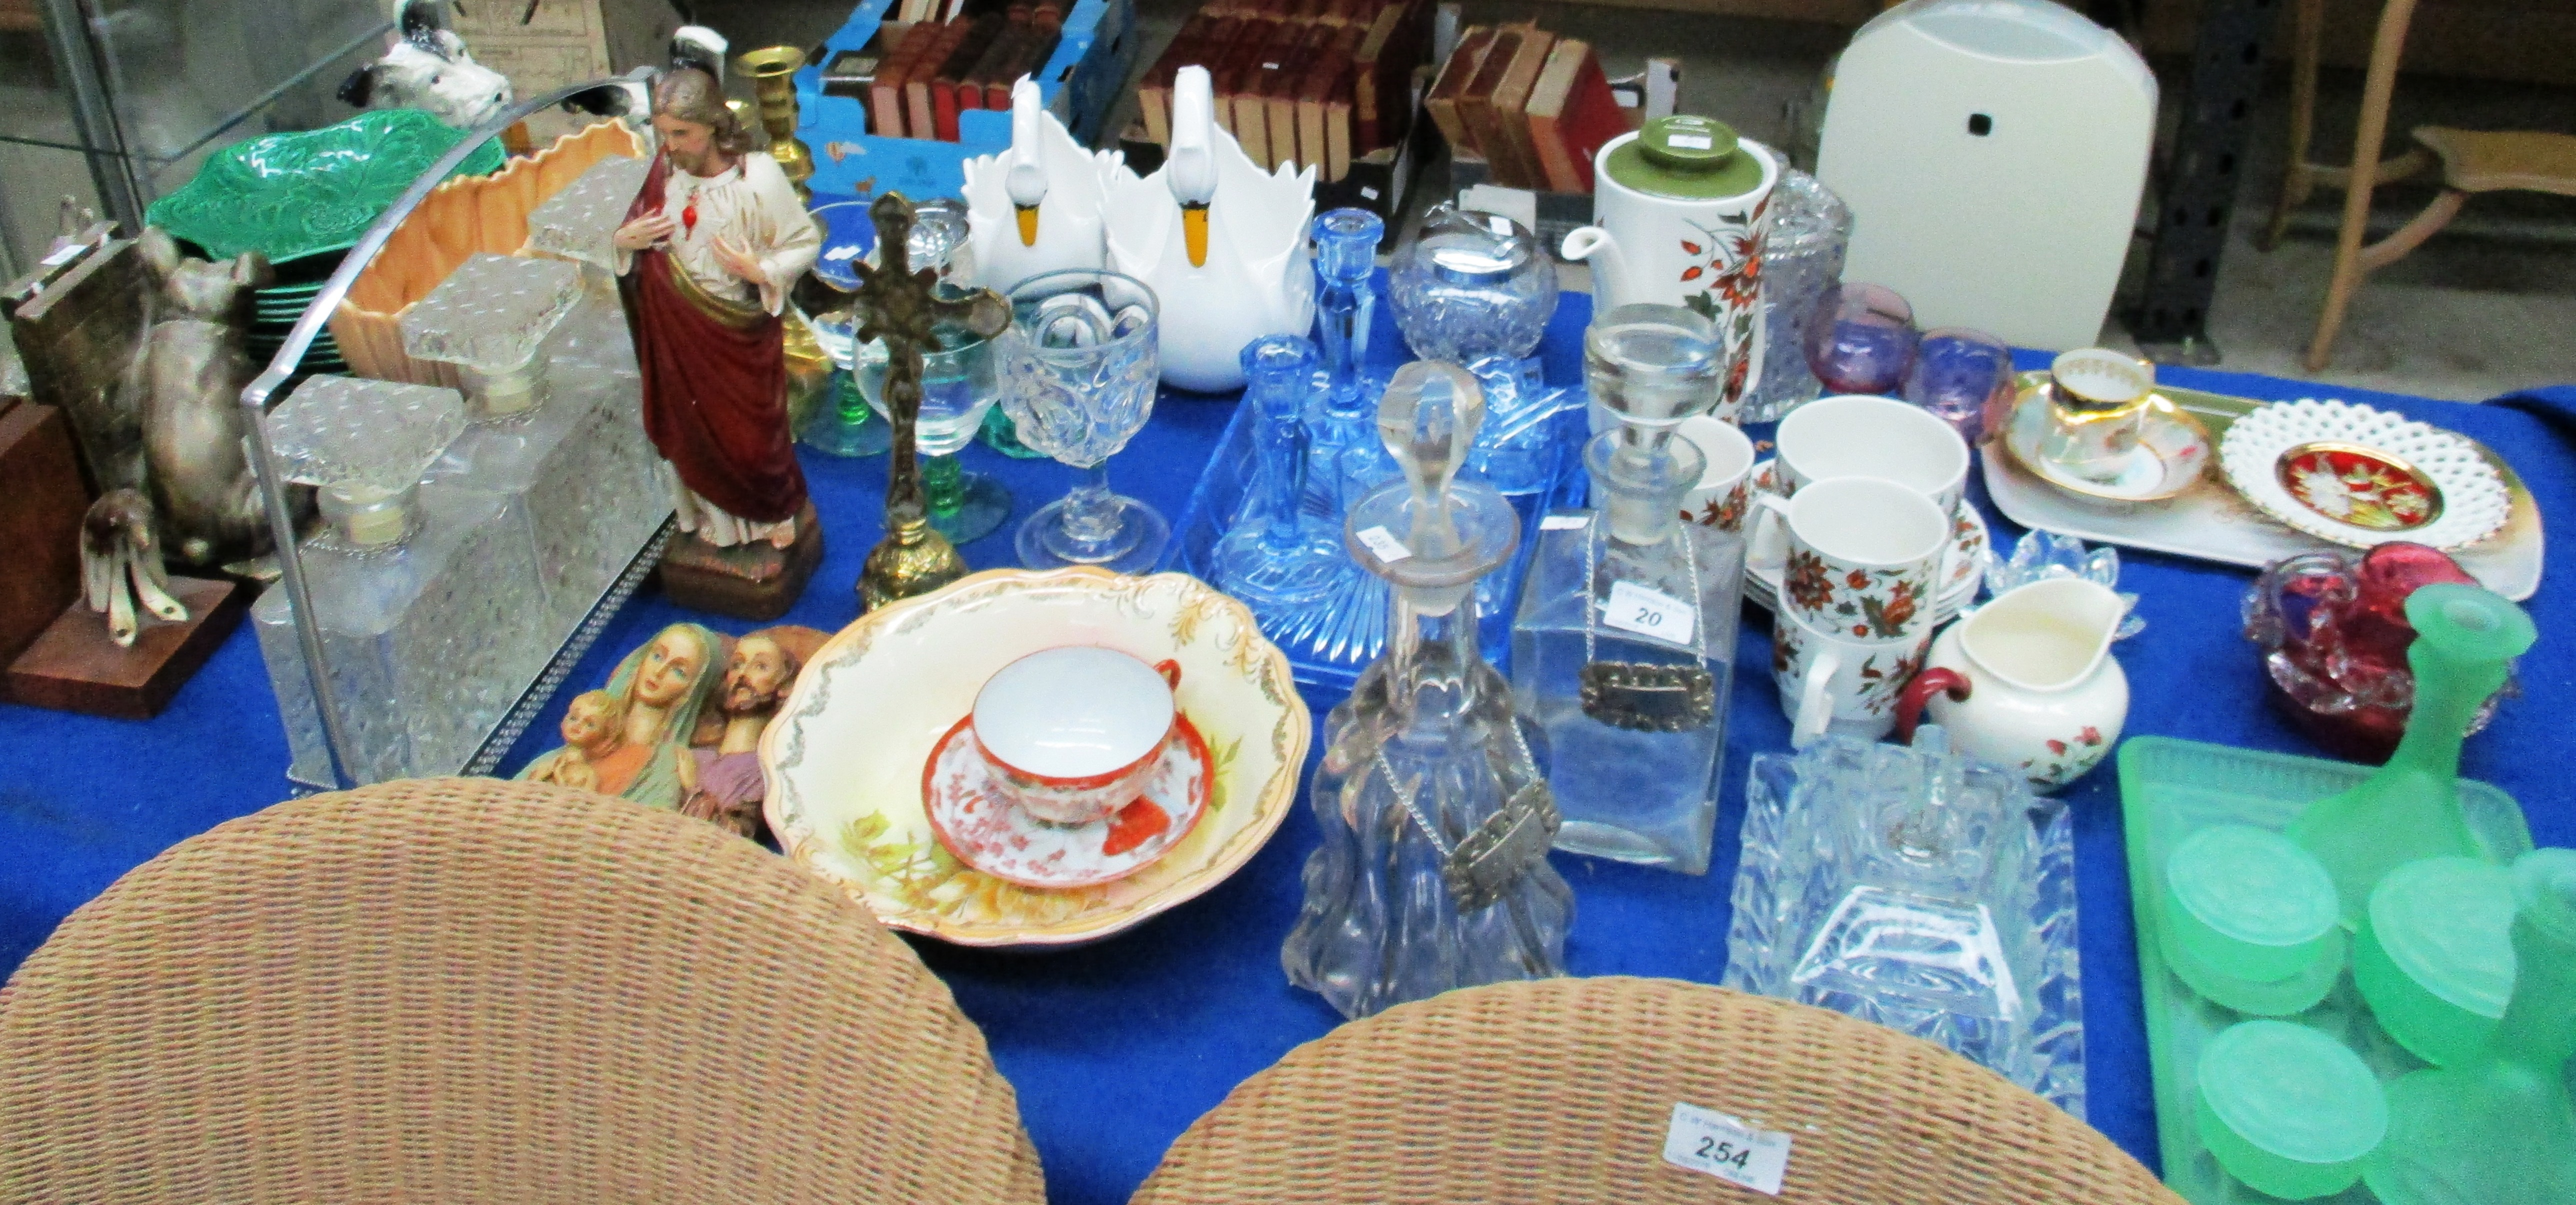 Lot 20 - Wedgwood green 'Cabbage' plates, 2 pairs of bookends, glassware, religious figures,